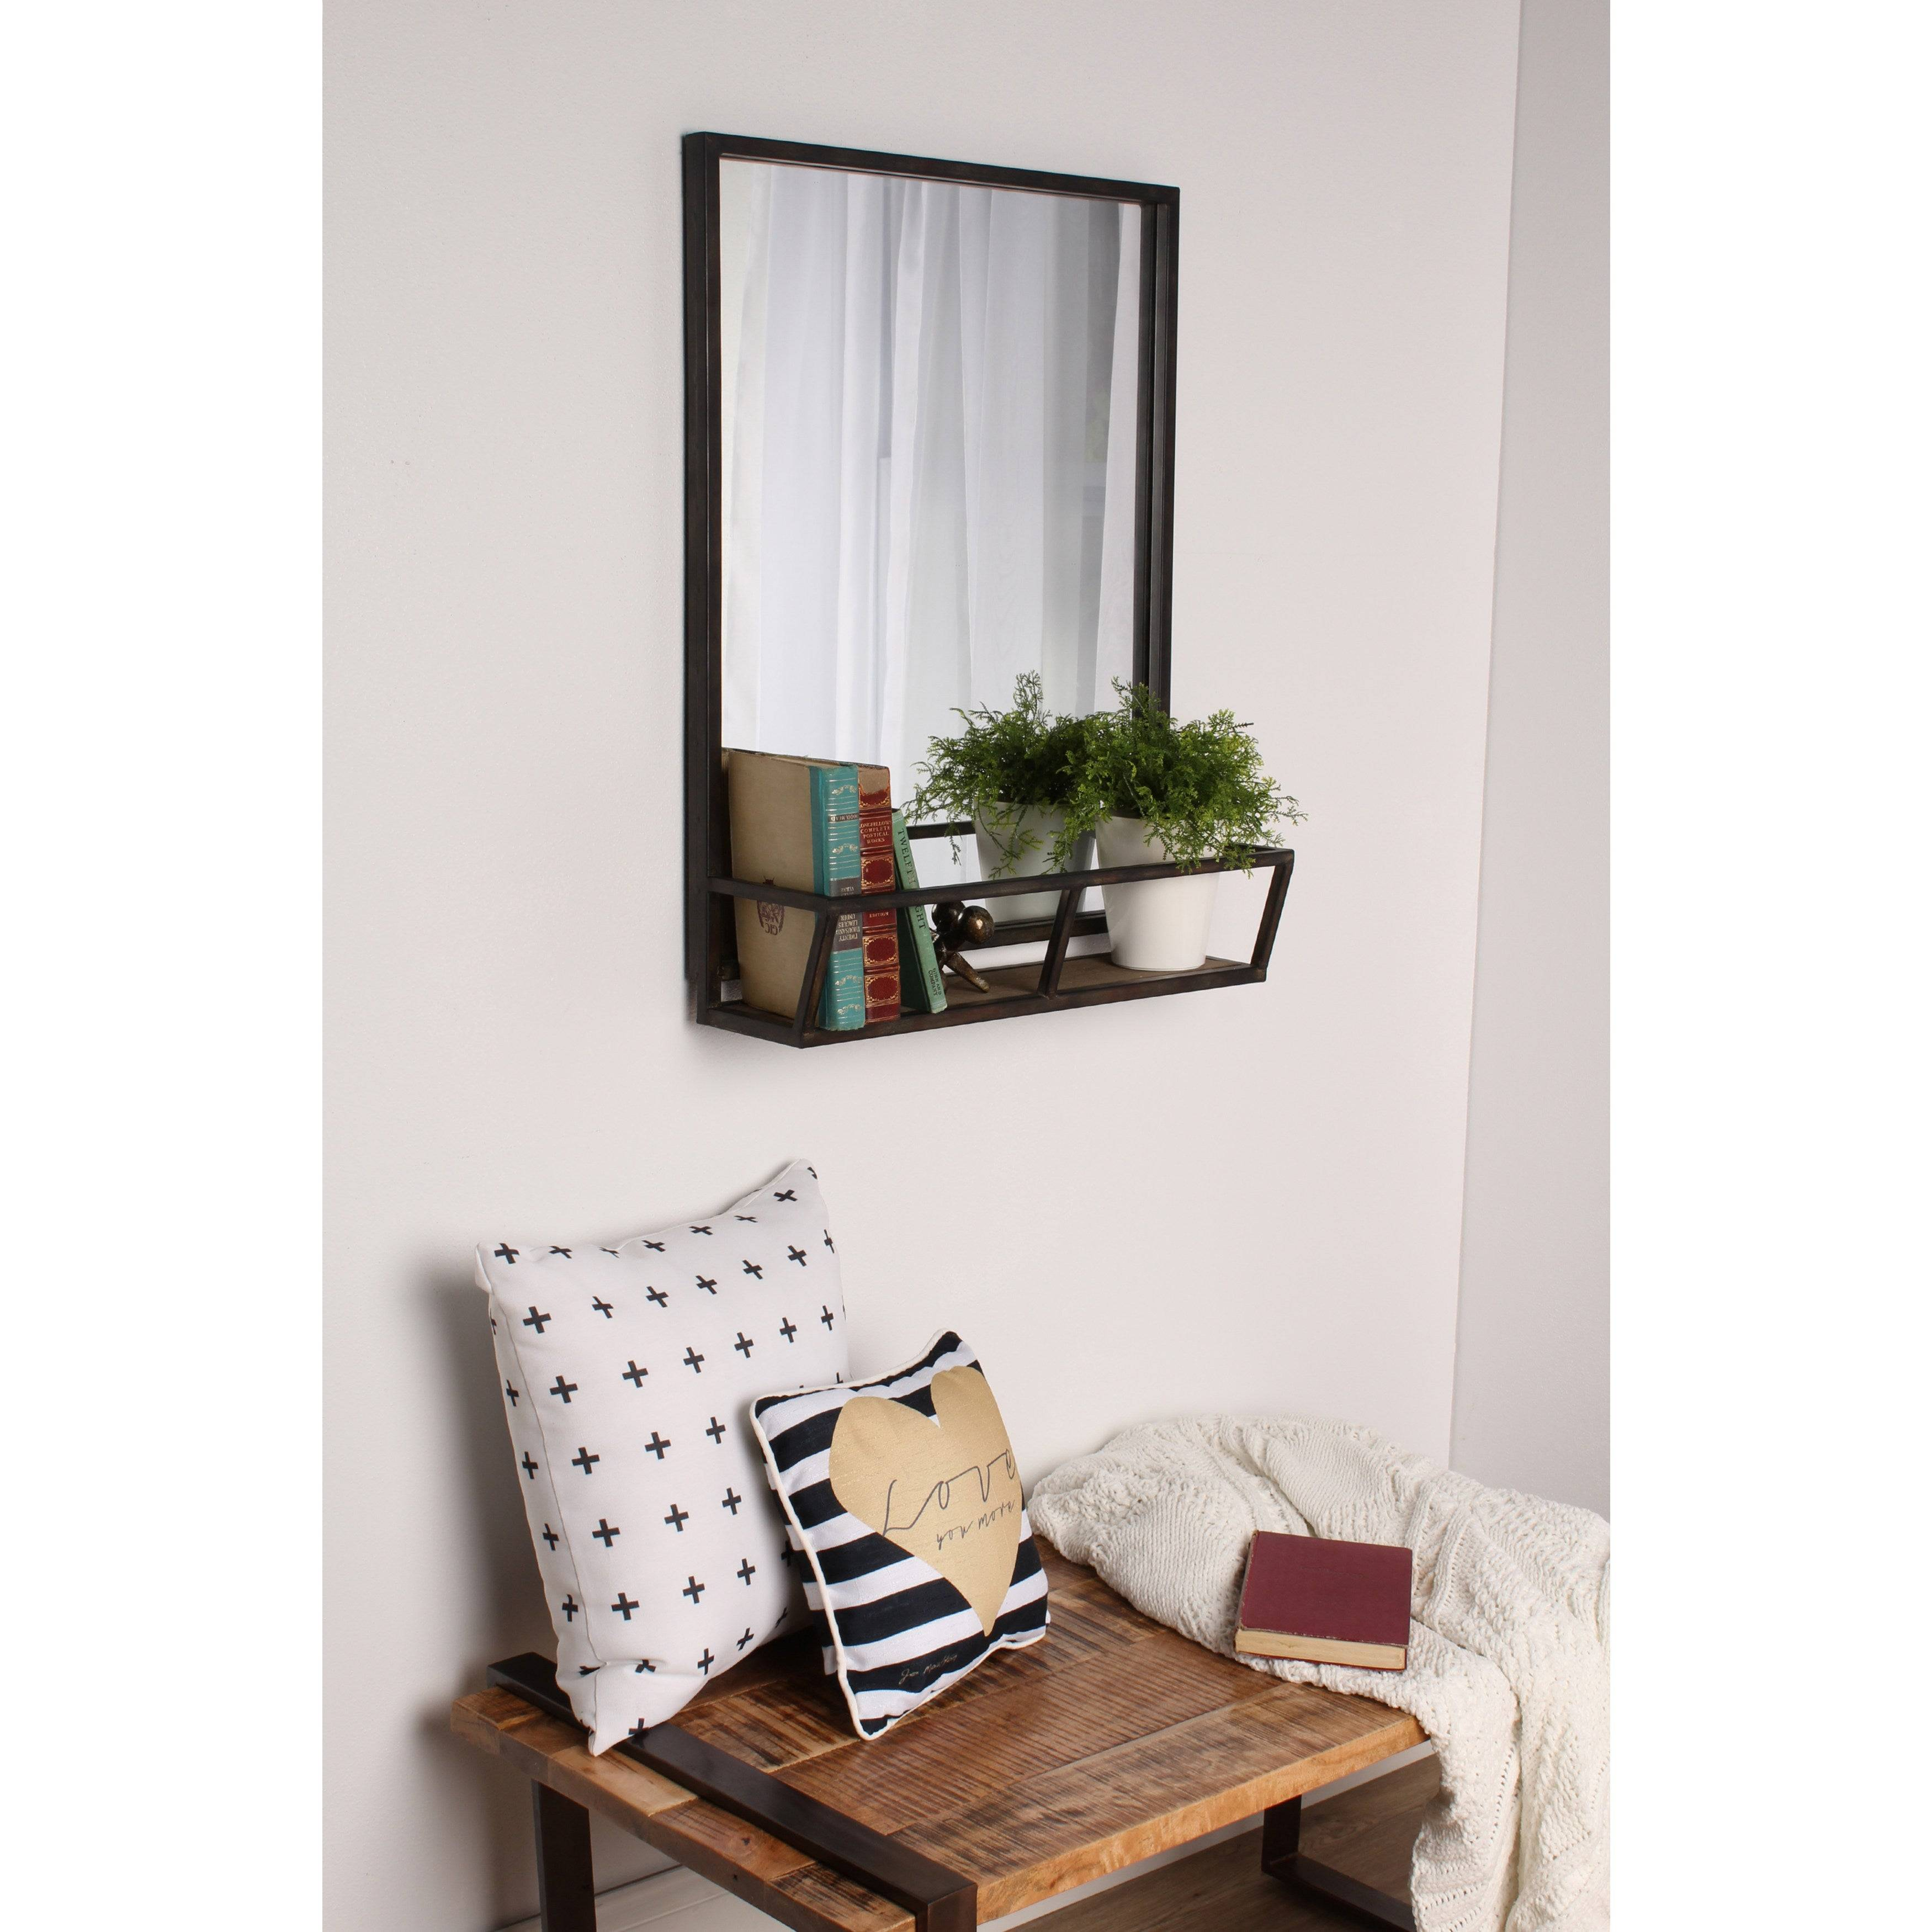 Kate and Laurel Jackson Decorative Rustic Black Metal Home Organizer Mirror With Shelf 018e419c 4dd0 429b 932a 067ea4870aab